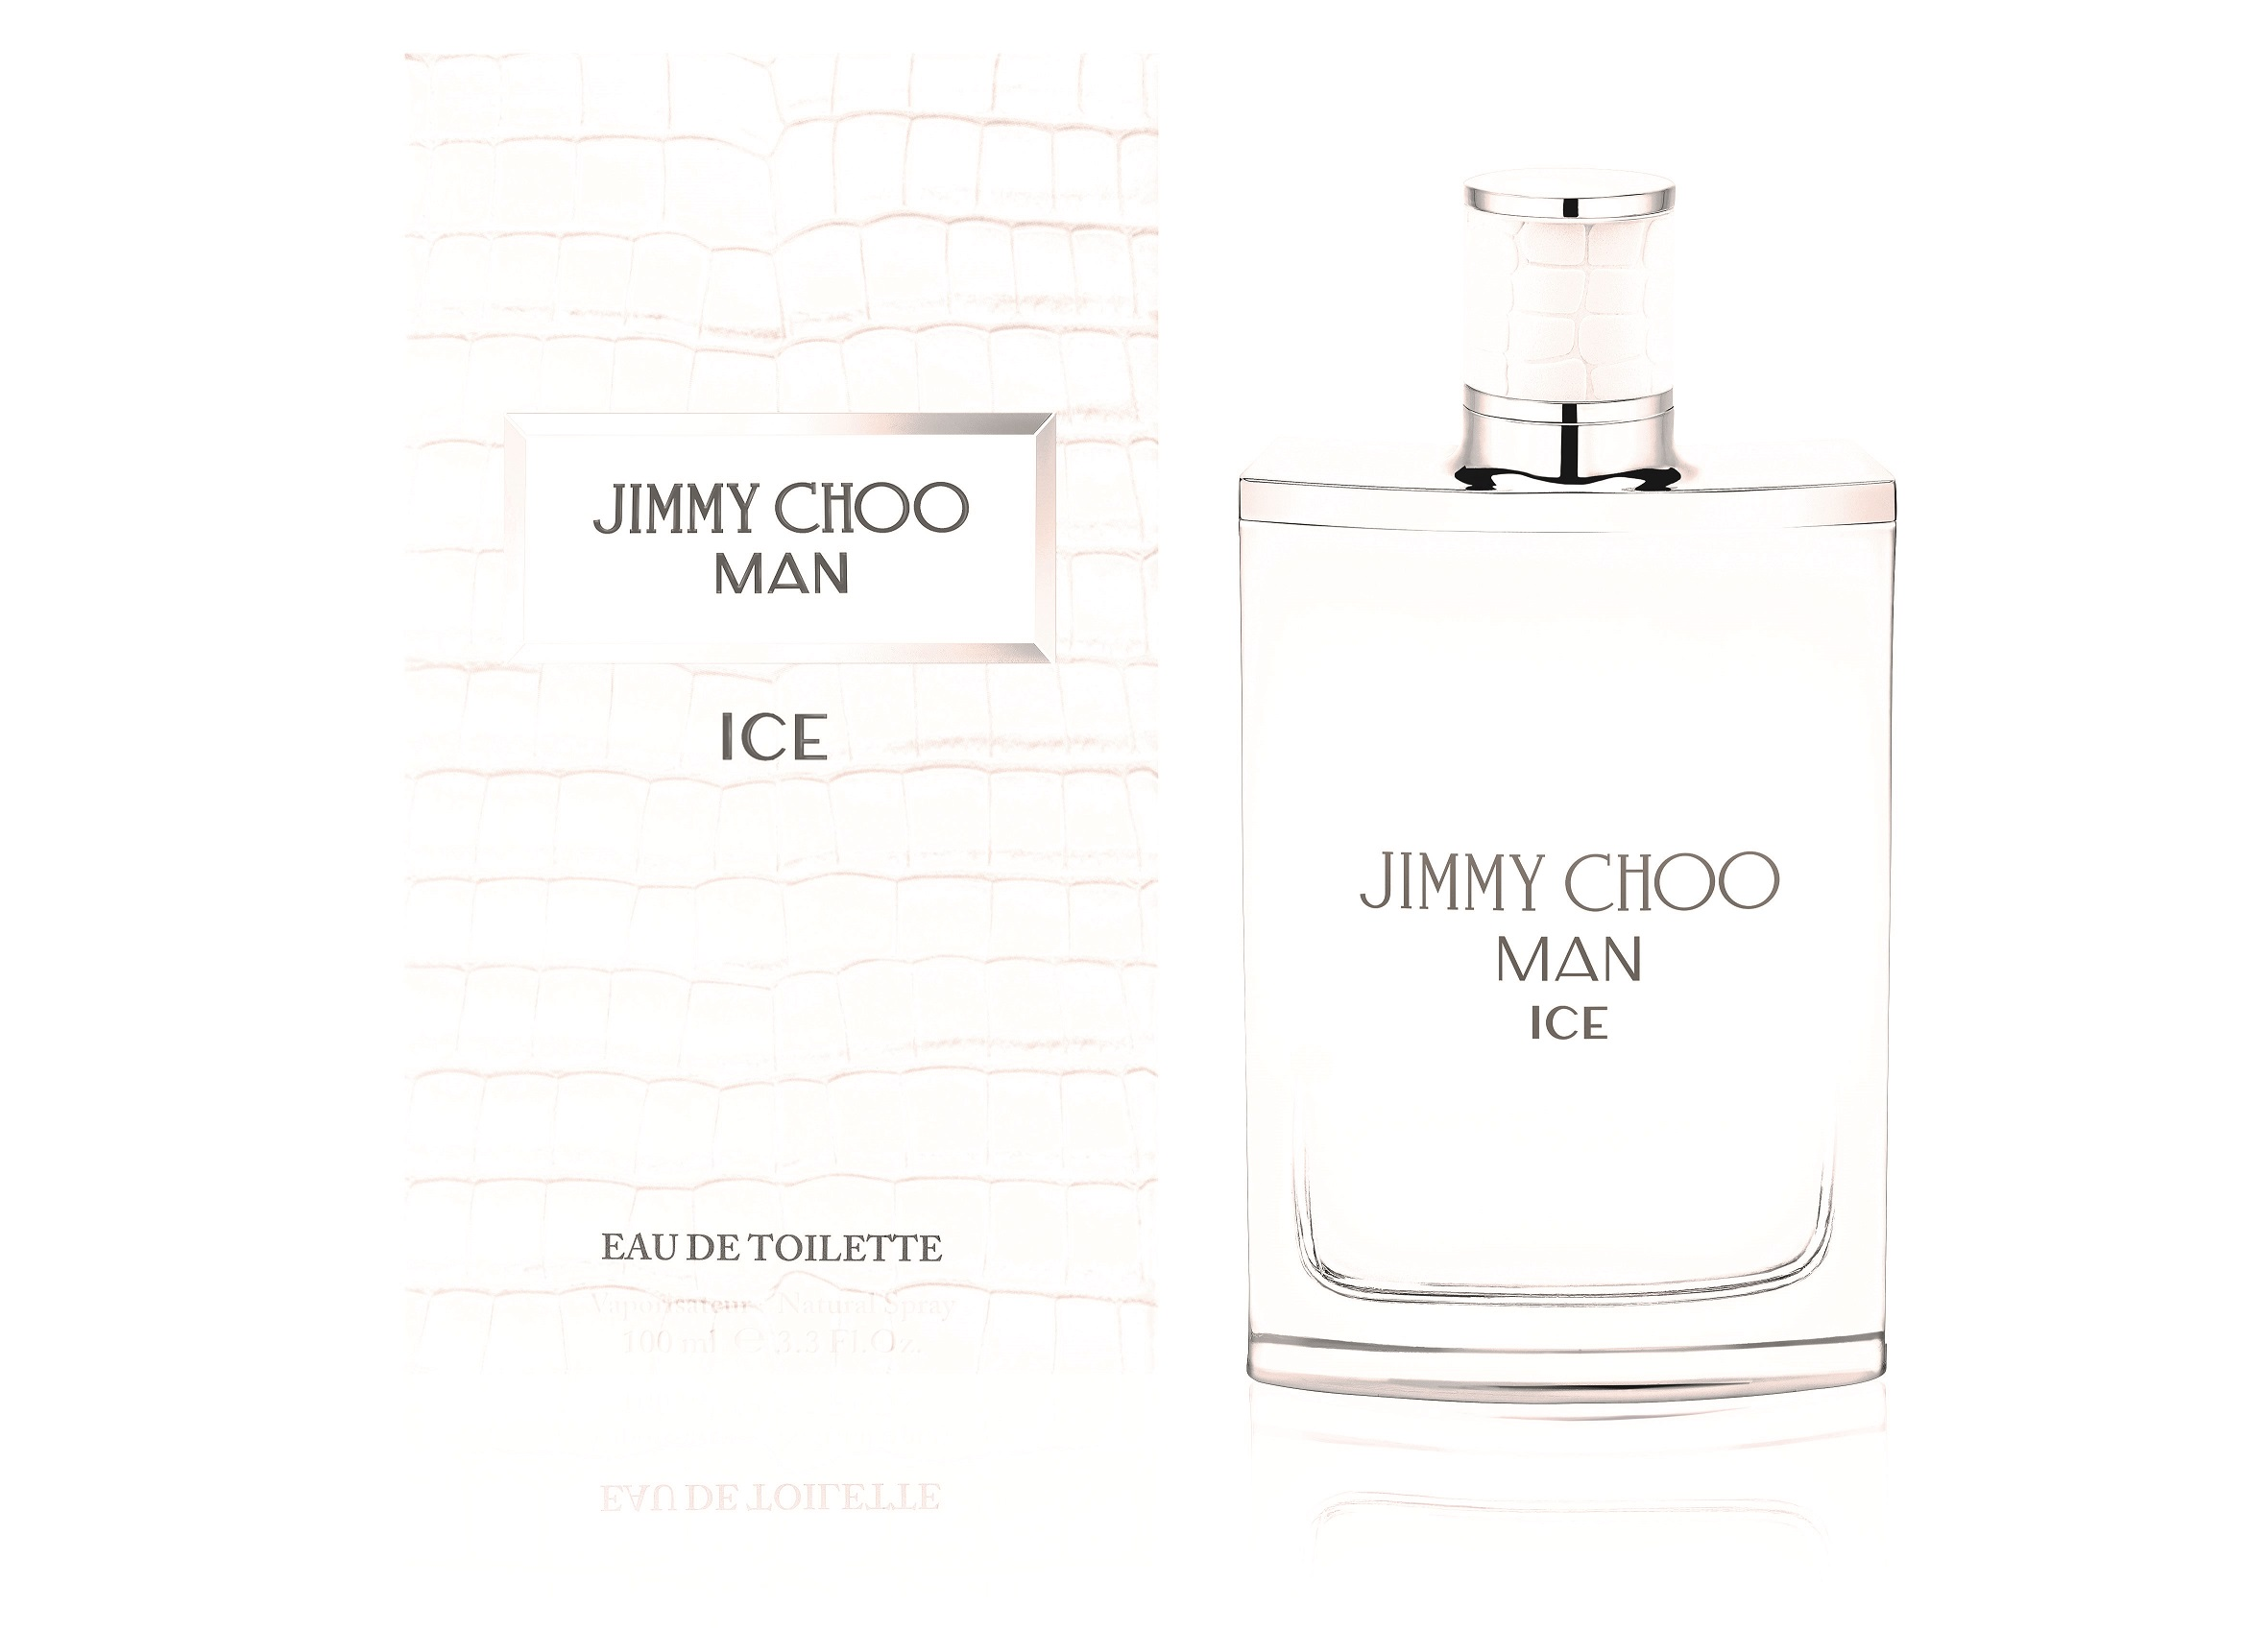 JIMMY CHOO MAN ICE_100ML_BOTTLE + PACKAGING_FRONT VIEW_3386460082174